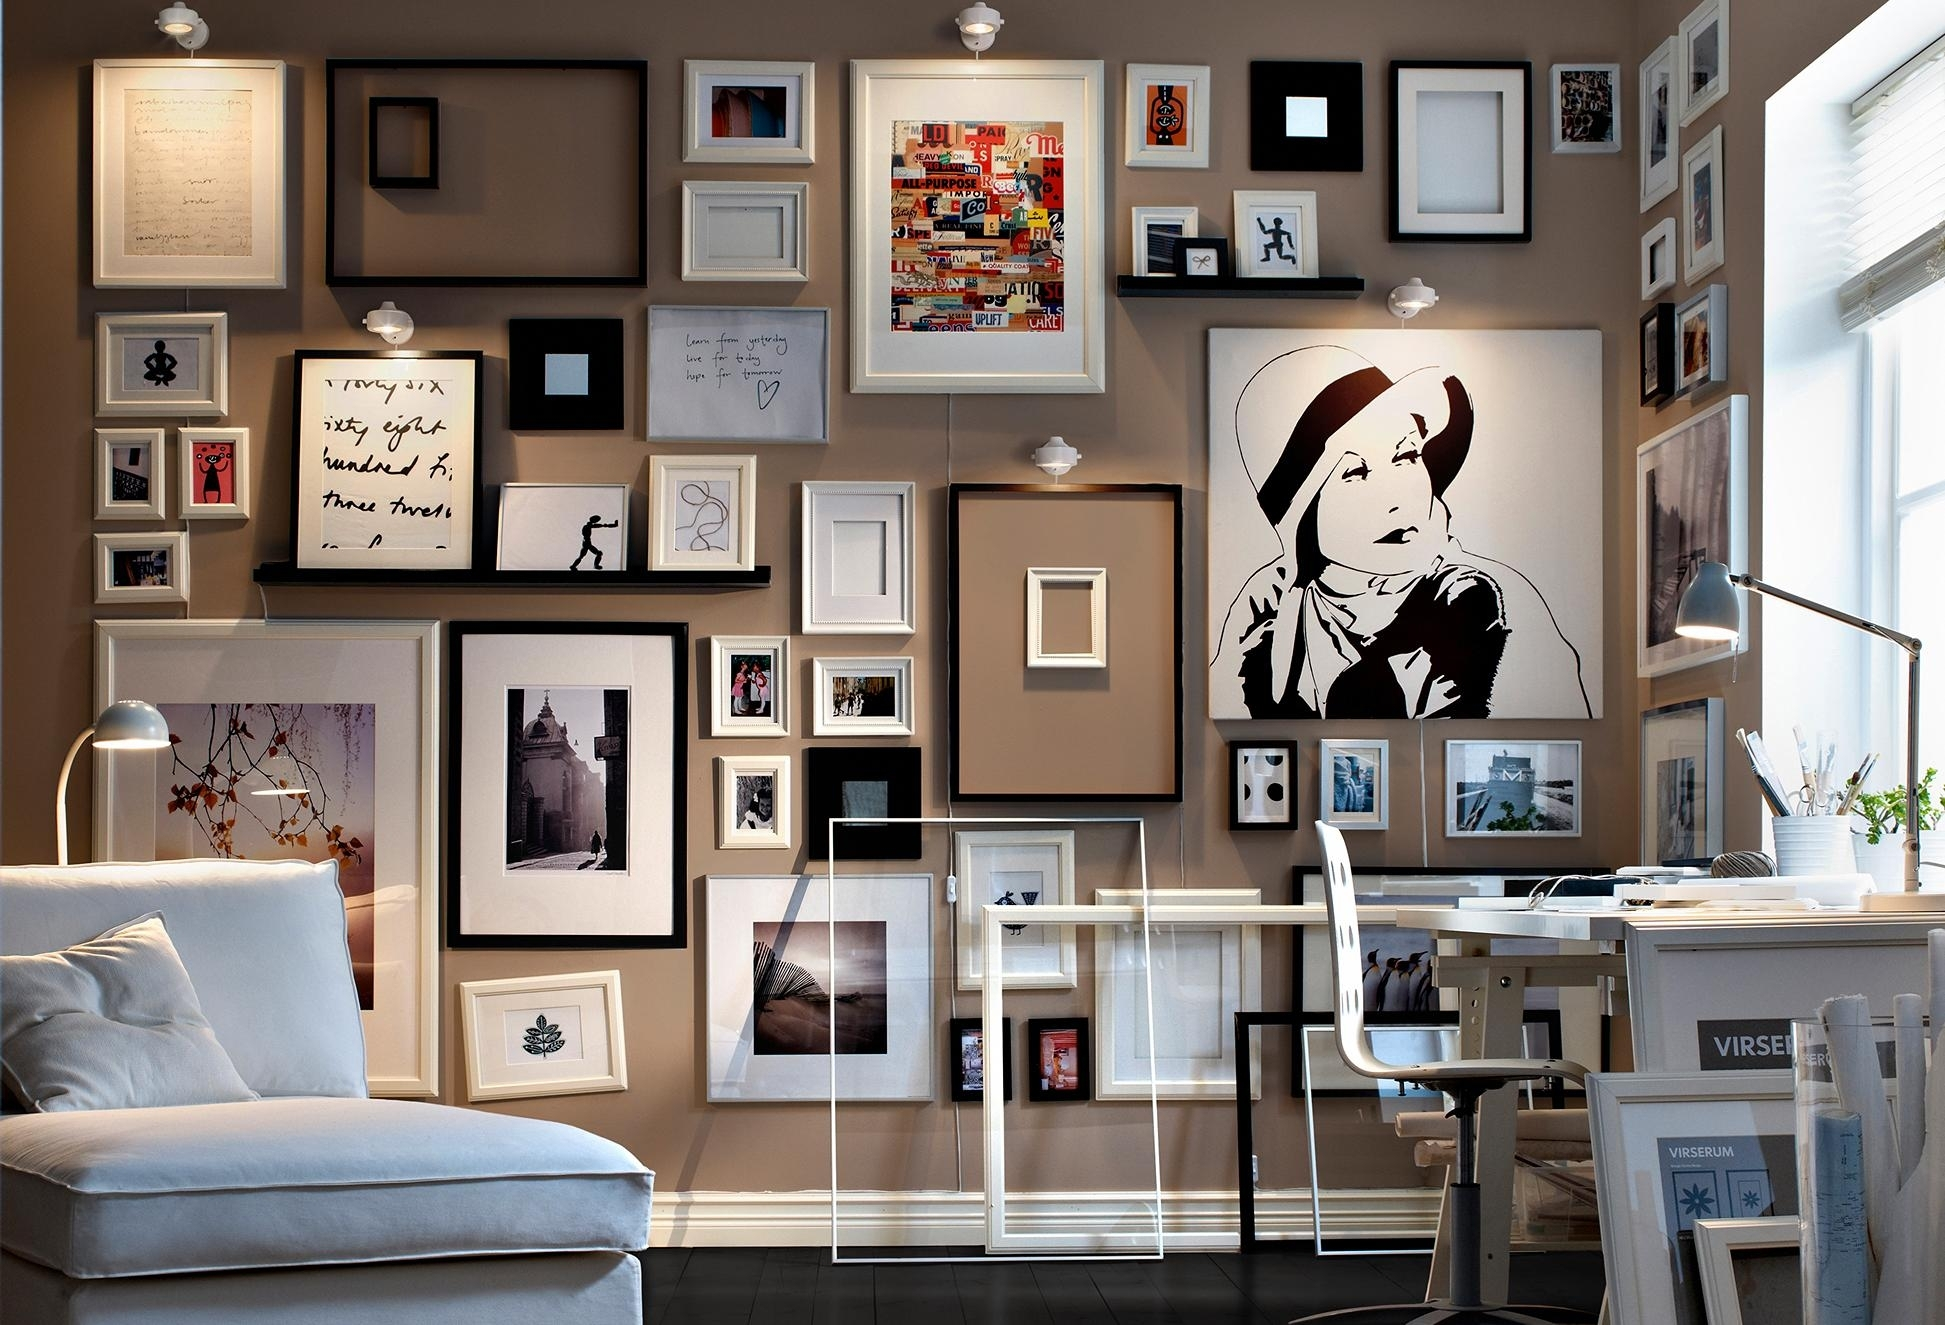 Living Room : Living Room 35 Awesome Creative Wall Art Of 40 Pertaining To 2018 Framed Wall Art For Living Room (Gallery 20 of 20)